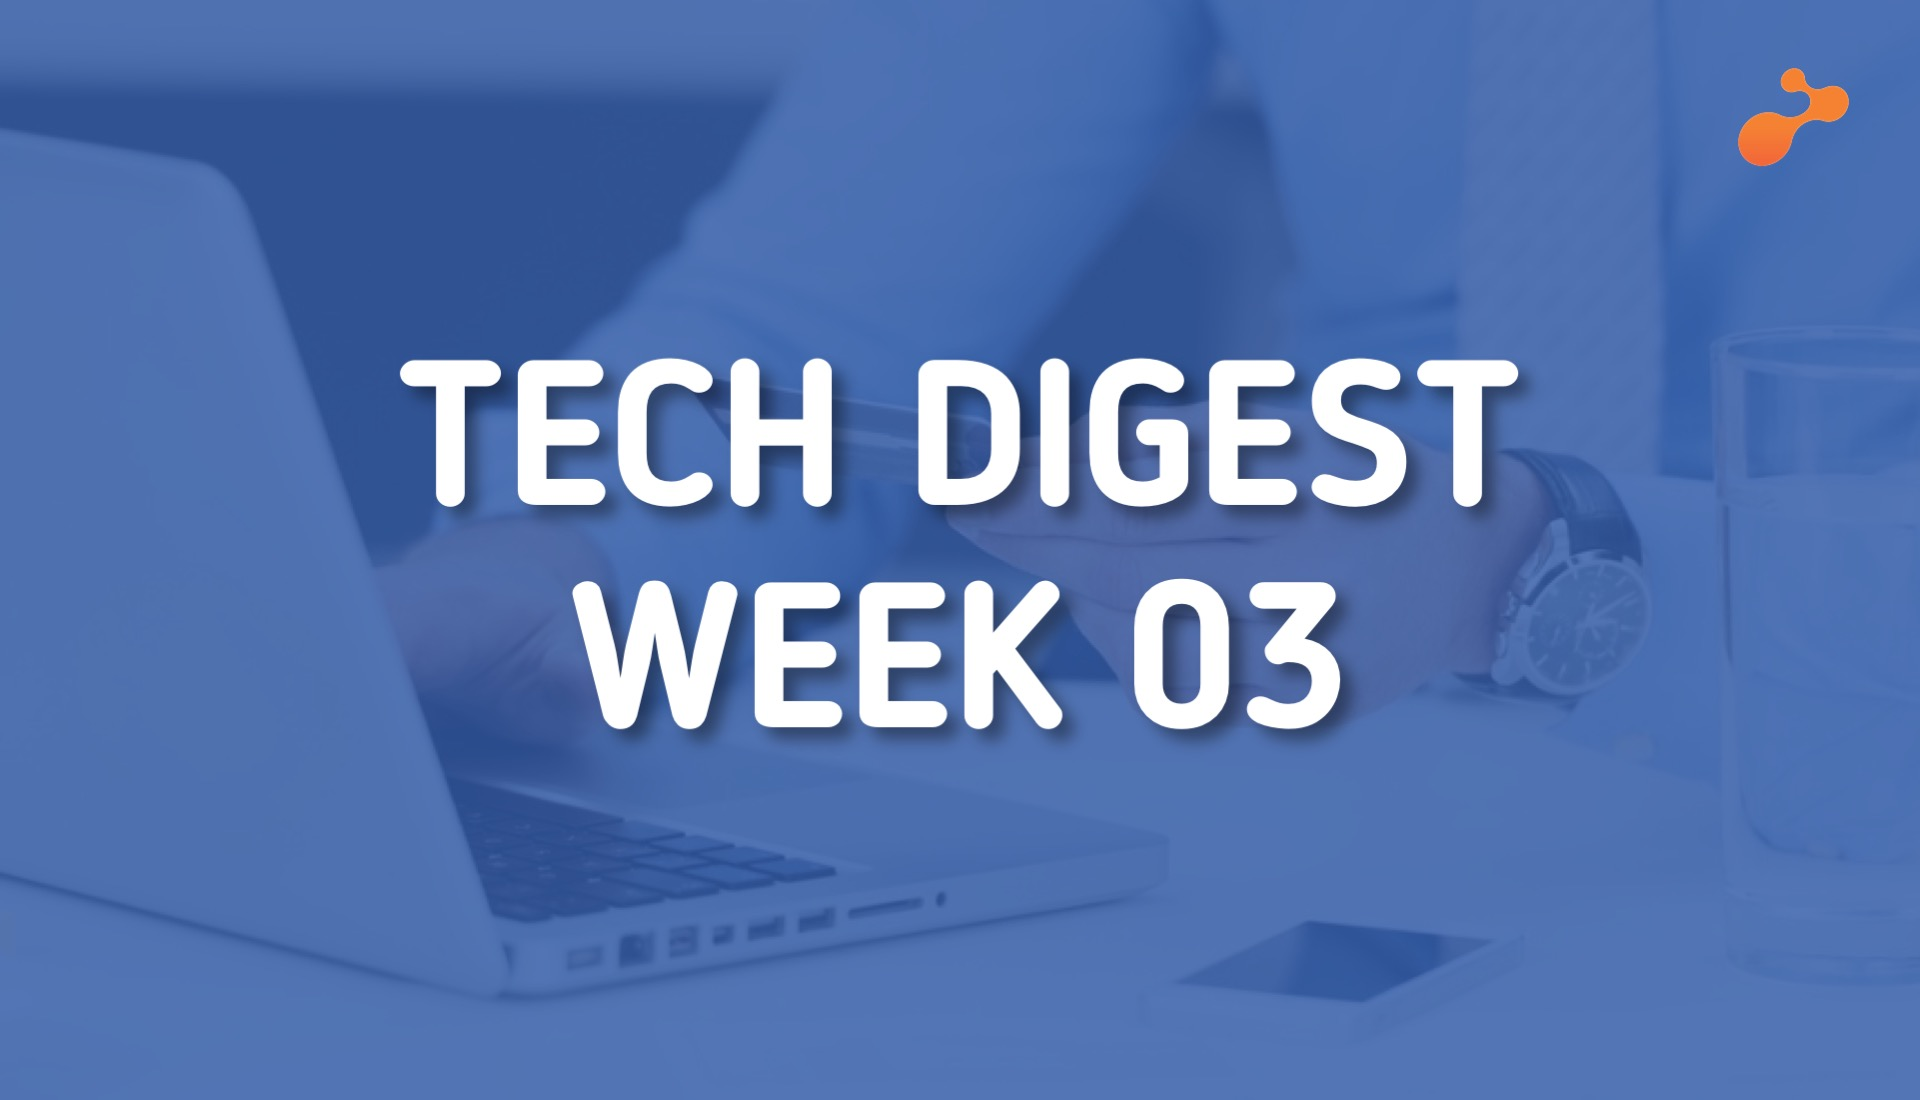 Tech Digest - Week 03, 2019